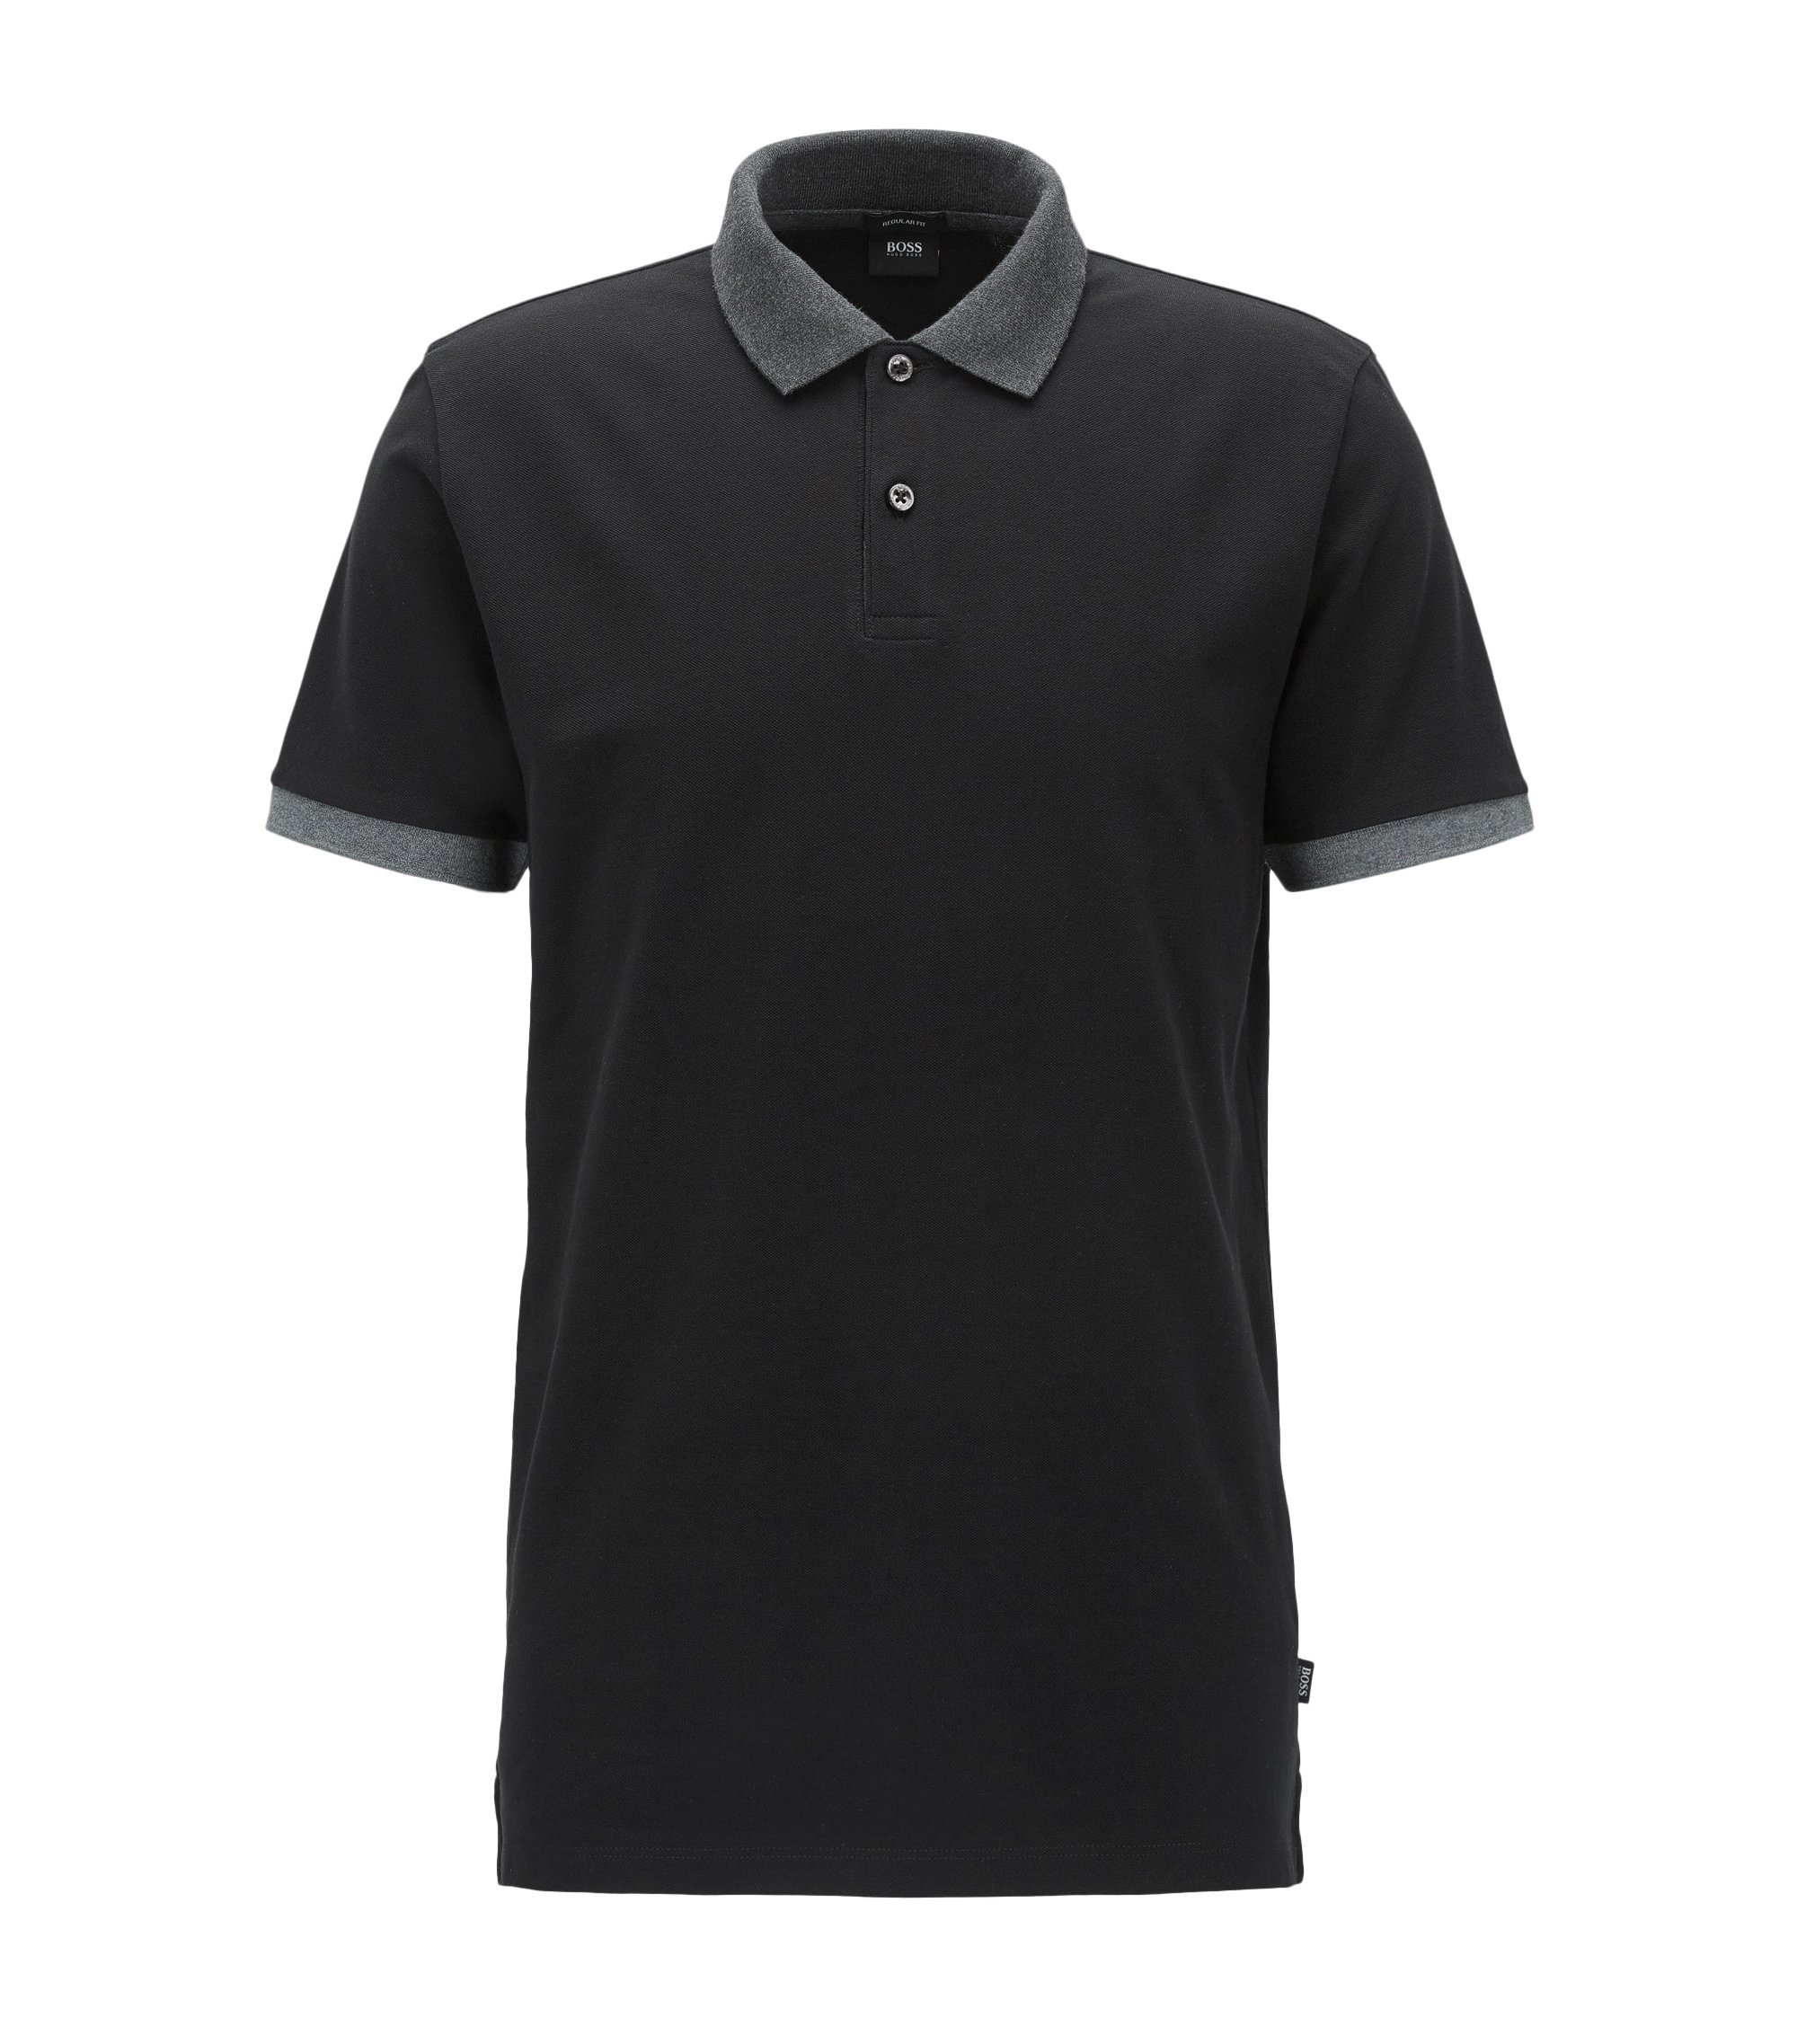 Piqué Pima Cotton Polo Shirt, Regular Fit | Parlay, Black